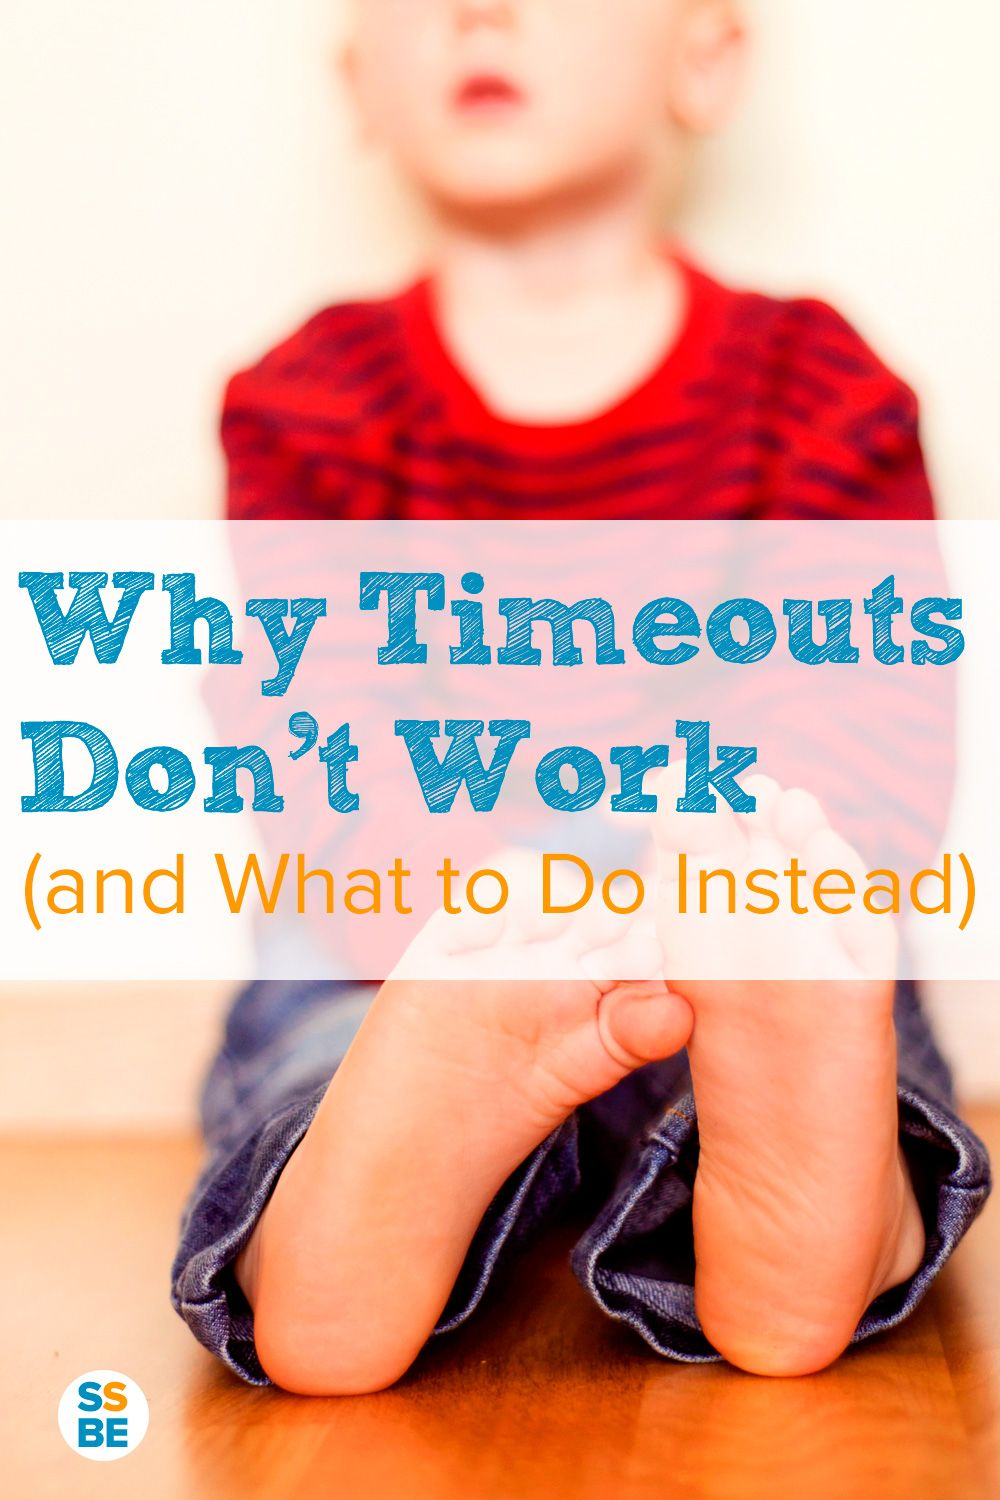 Do time outs really work? Most parents use time outs to discipline, but time outs don't work all the time. Here's why (and what you can do instead):